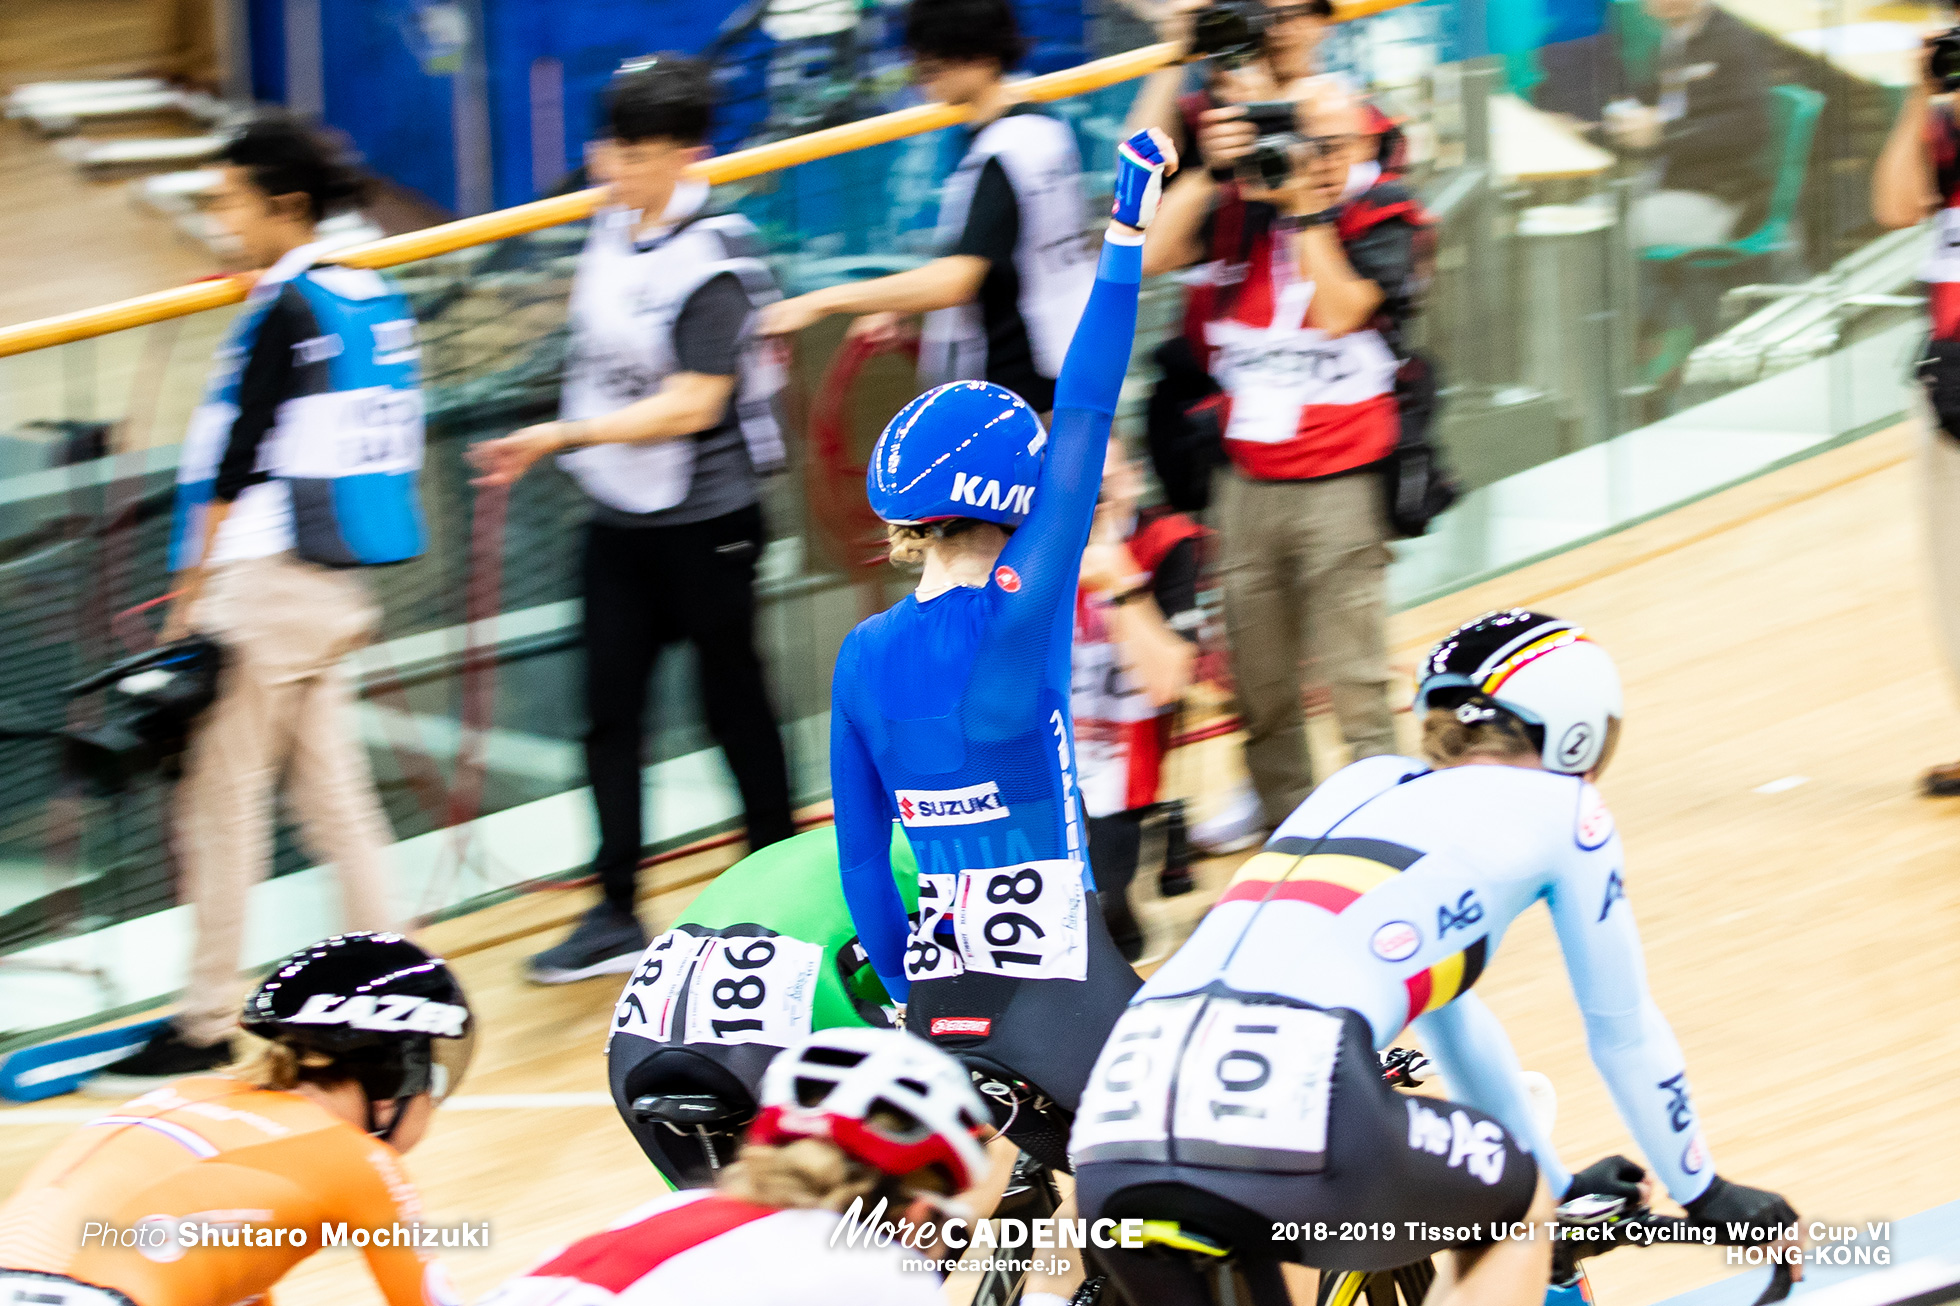 Women's Scratch Race / Track Cycling World Cup VI / Hong-KongOmnium / Track Cycling World Cup VI / Hong-Kong